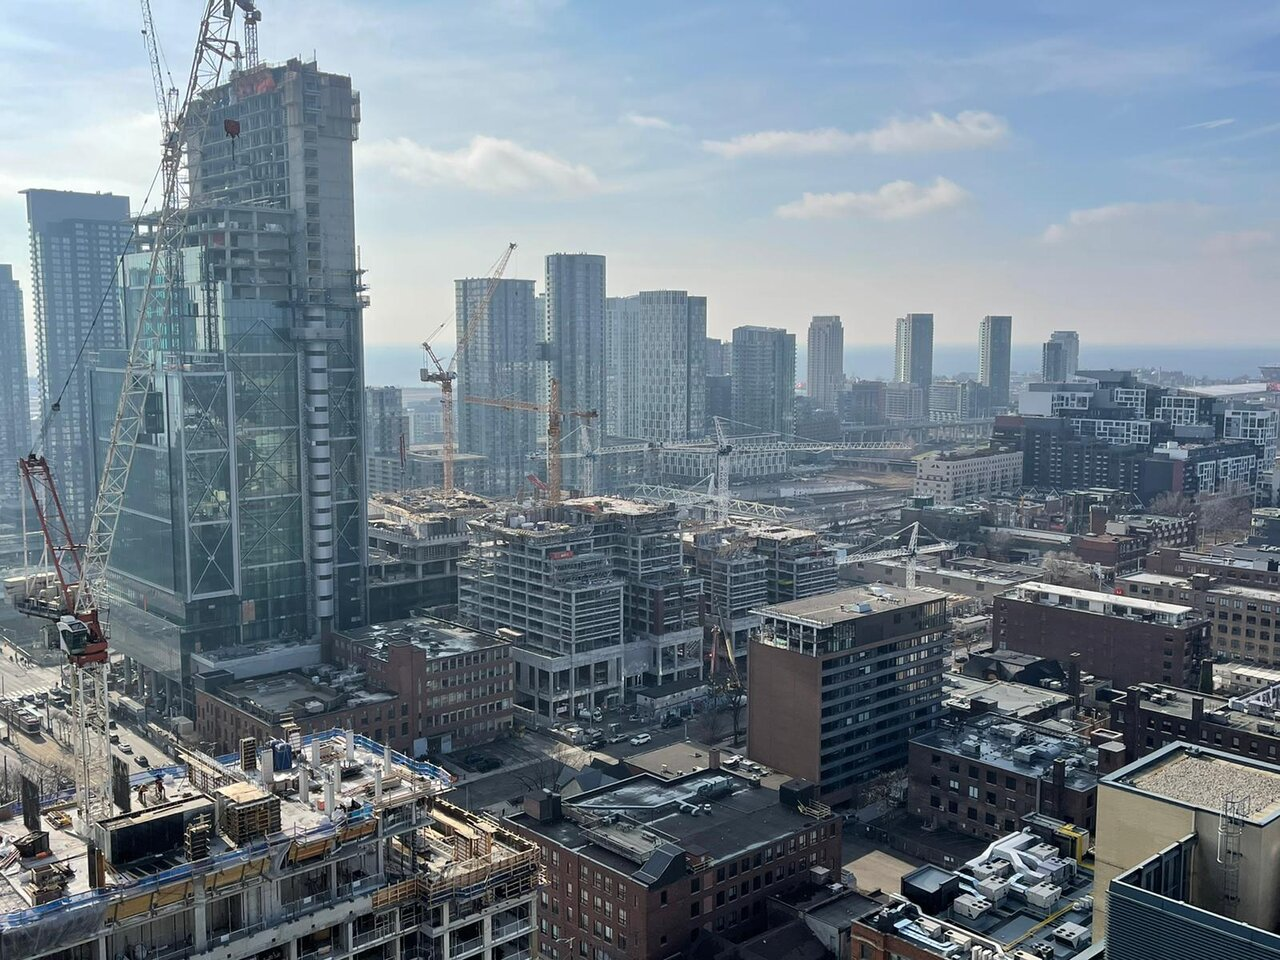 The Well, Tridel, RioCan, Allied, architectsAlliance, Wallman, BDP, Toronto